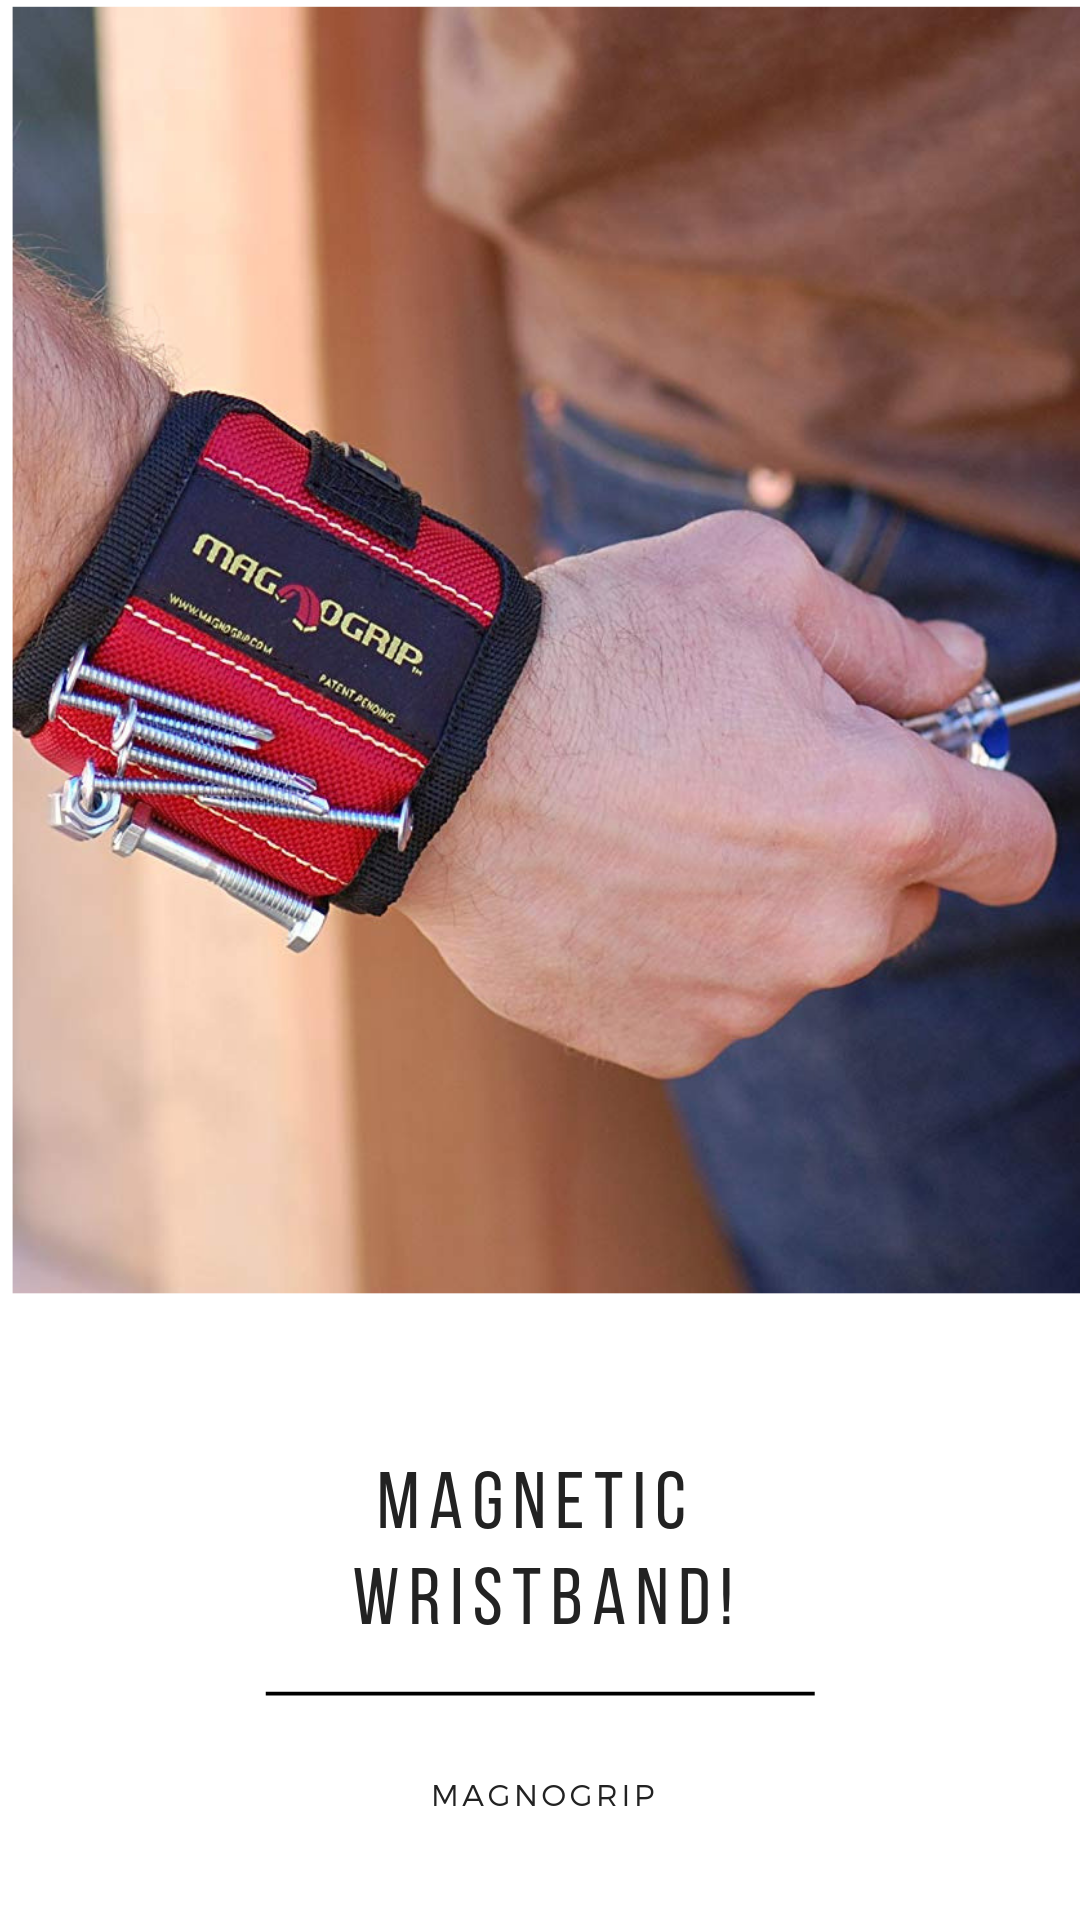 Top 9 Trends In Magnetic Wristband Home Depot To Watch Super